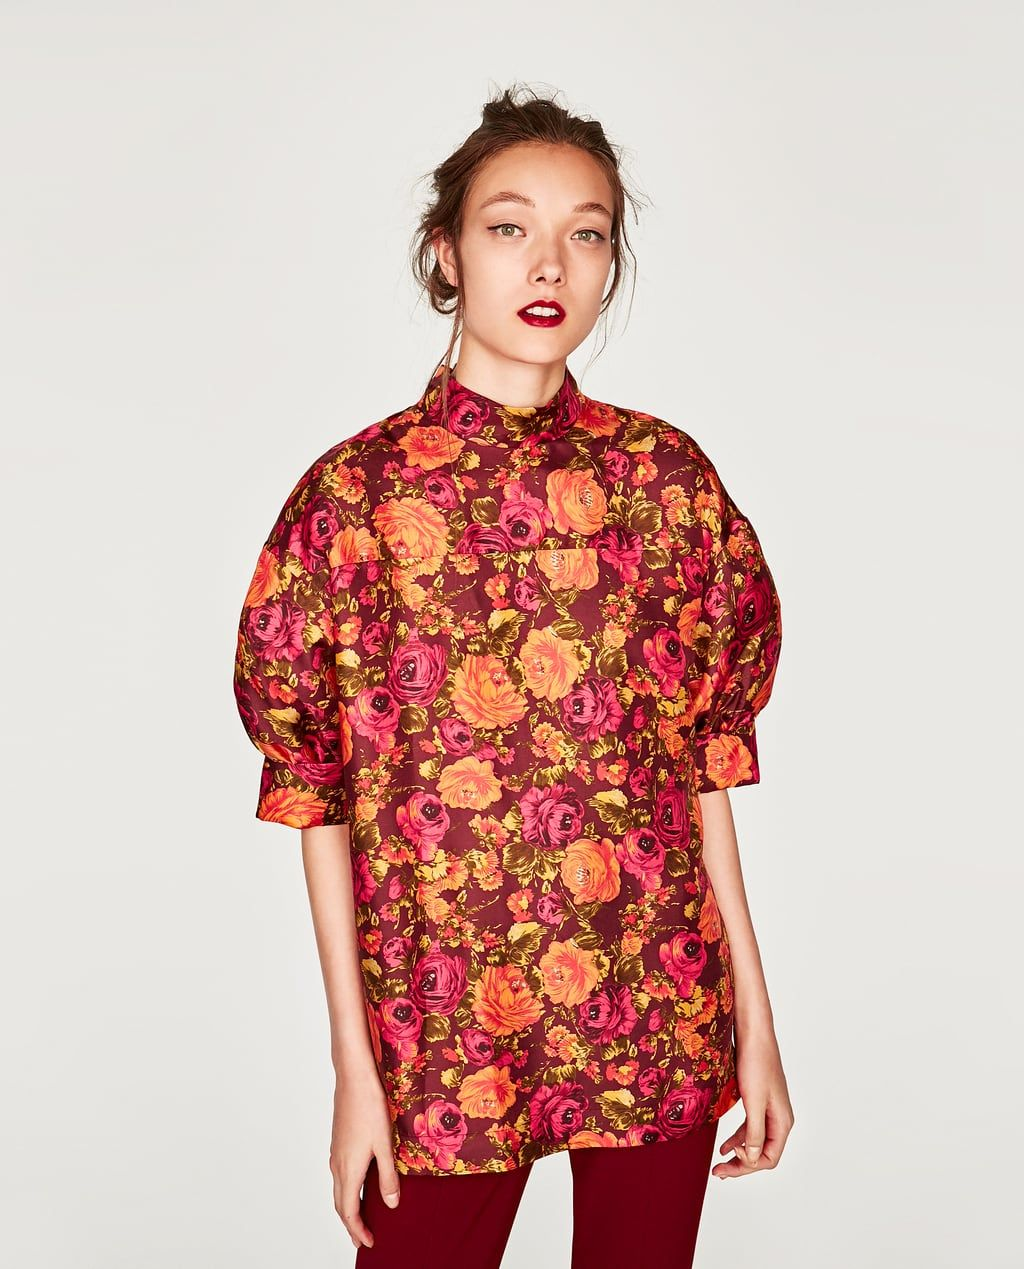 fff99f2fce280 SILK SHIRT WITH VOLUMINOUS SLEEVES-STARTING FROM 50% OFF-WOMAN-SALE ...